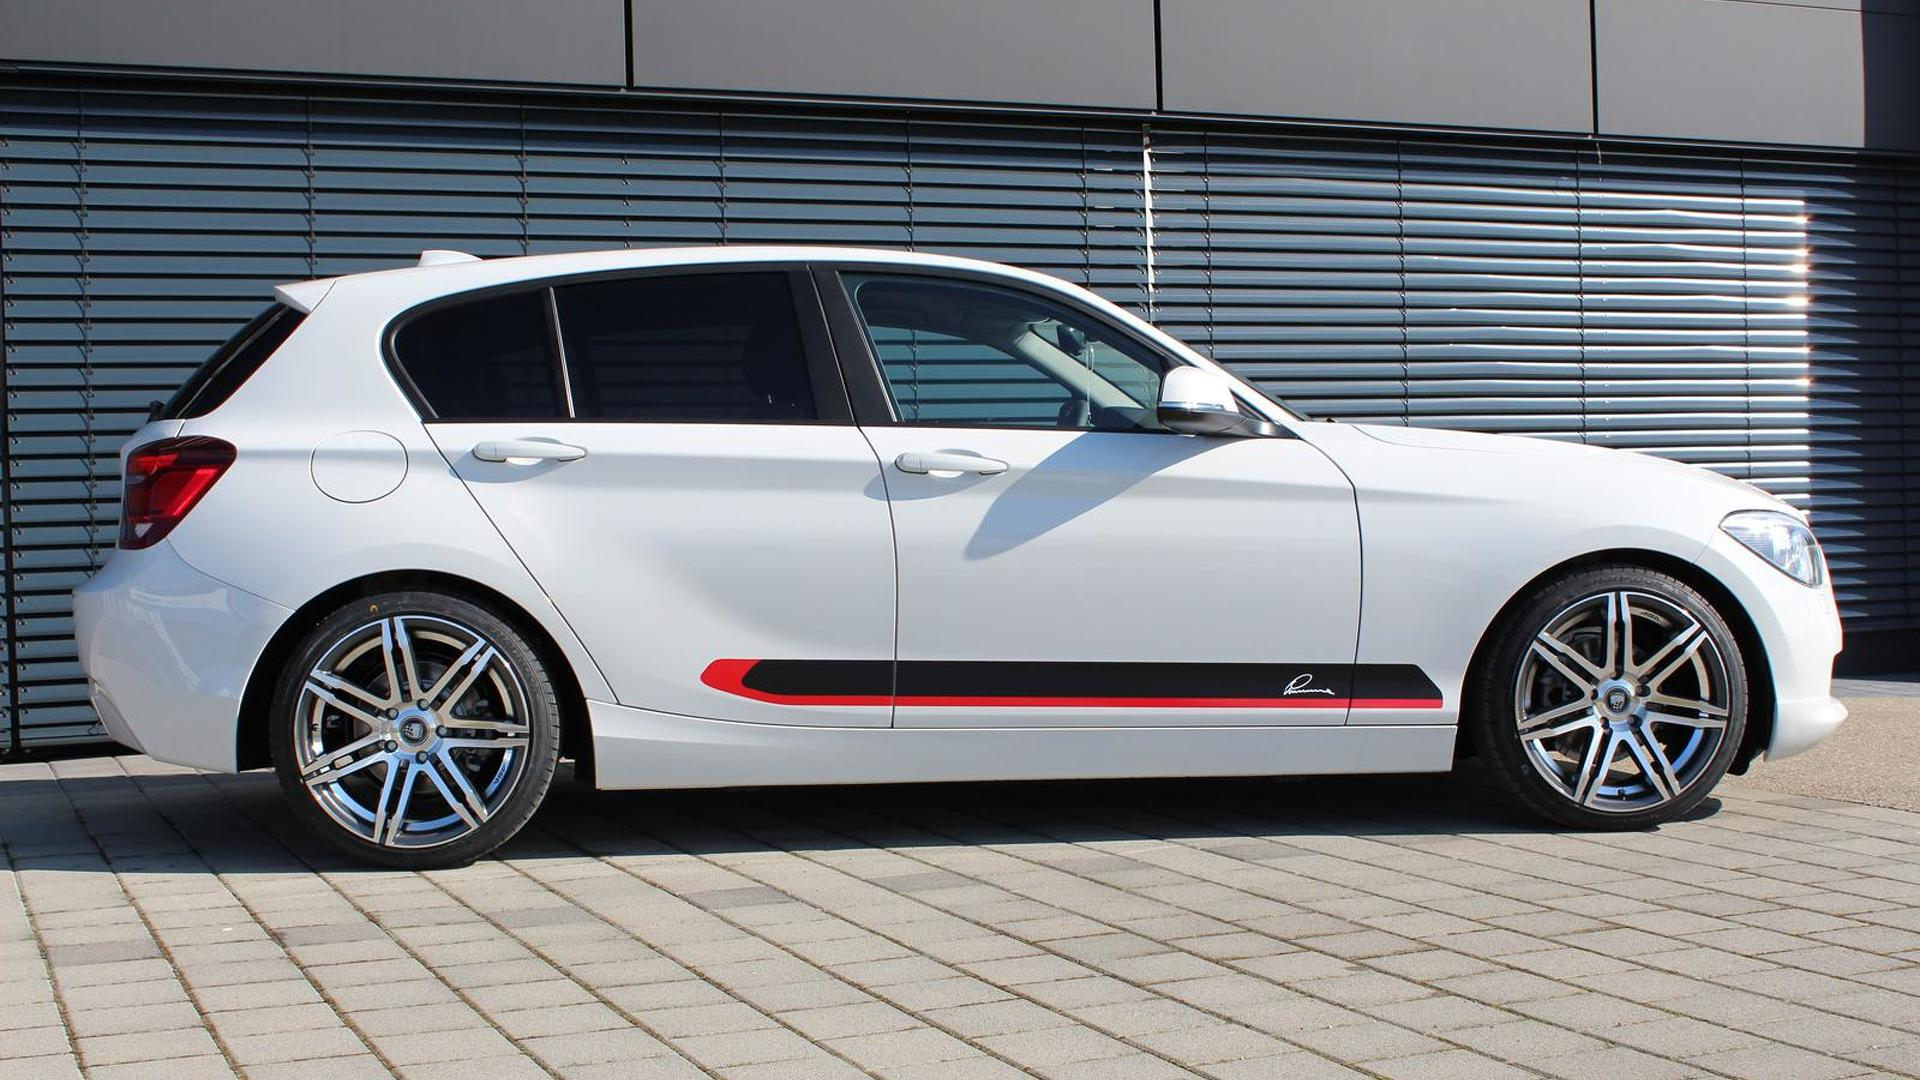 BMW 1-Series F20 modestly upgraded by Lumma Design